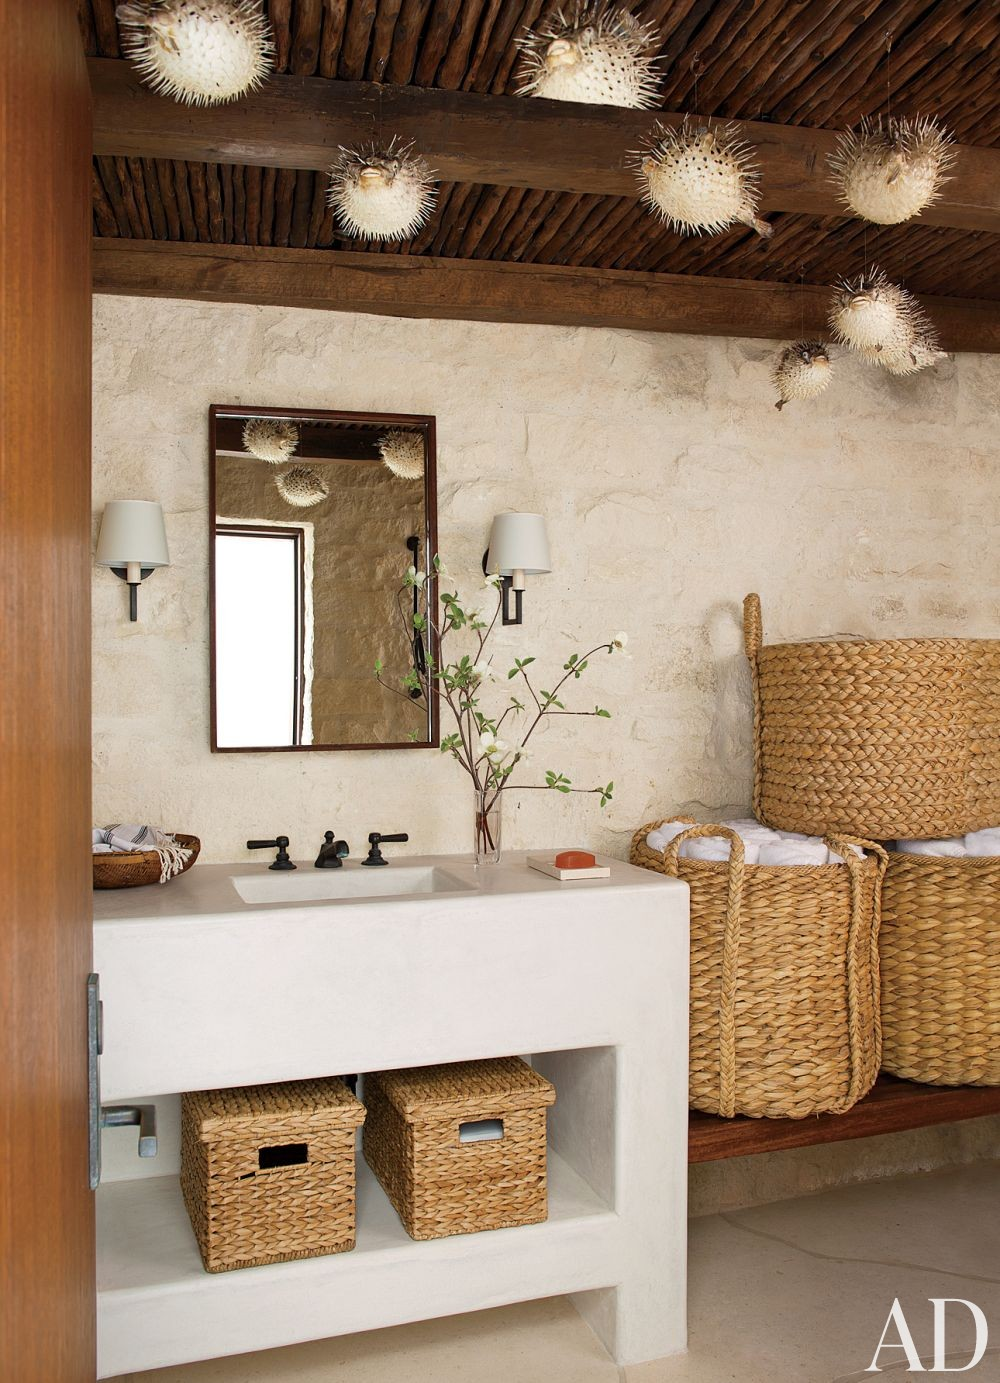 Beach Bathroom By Atelier Am By Architectural Digest Ad